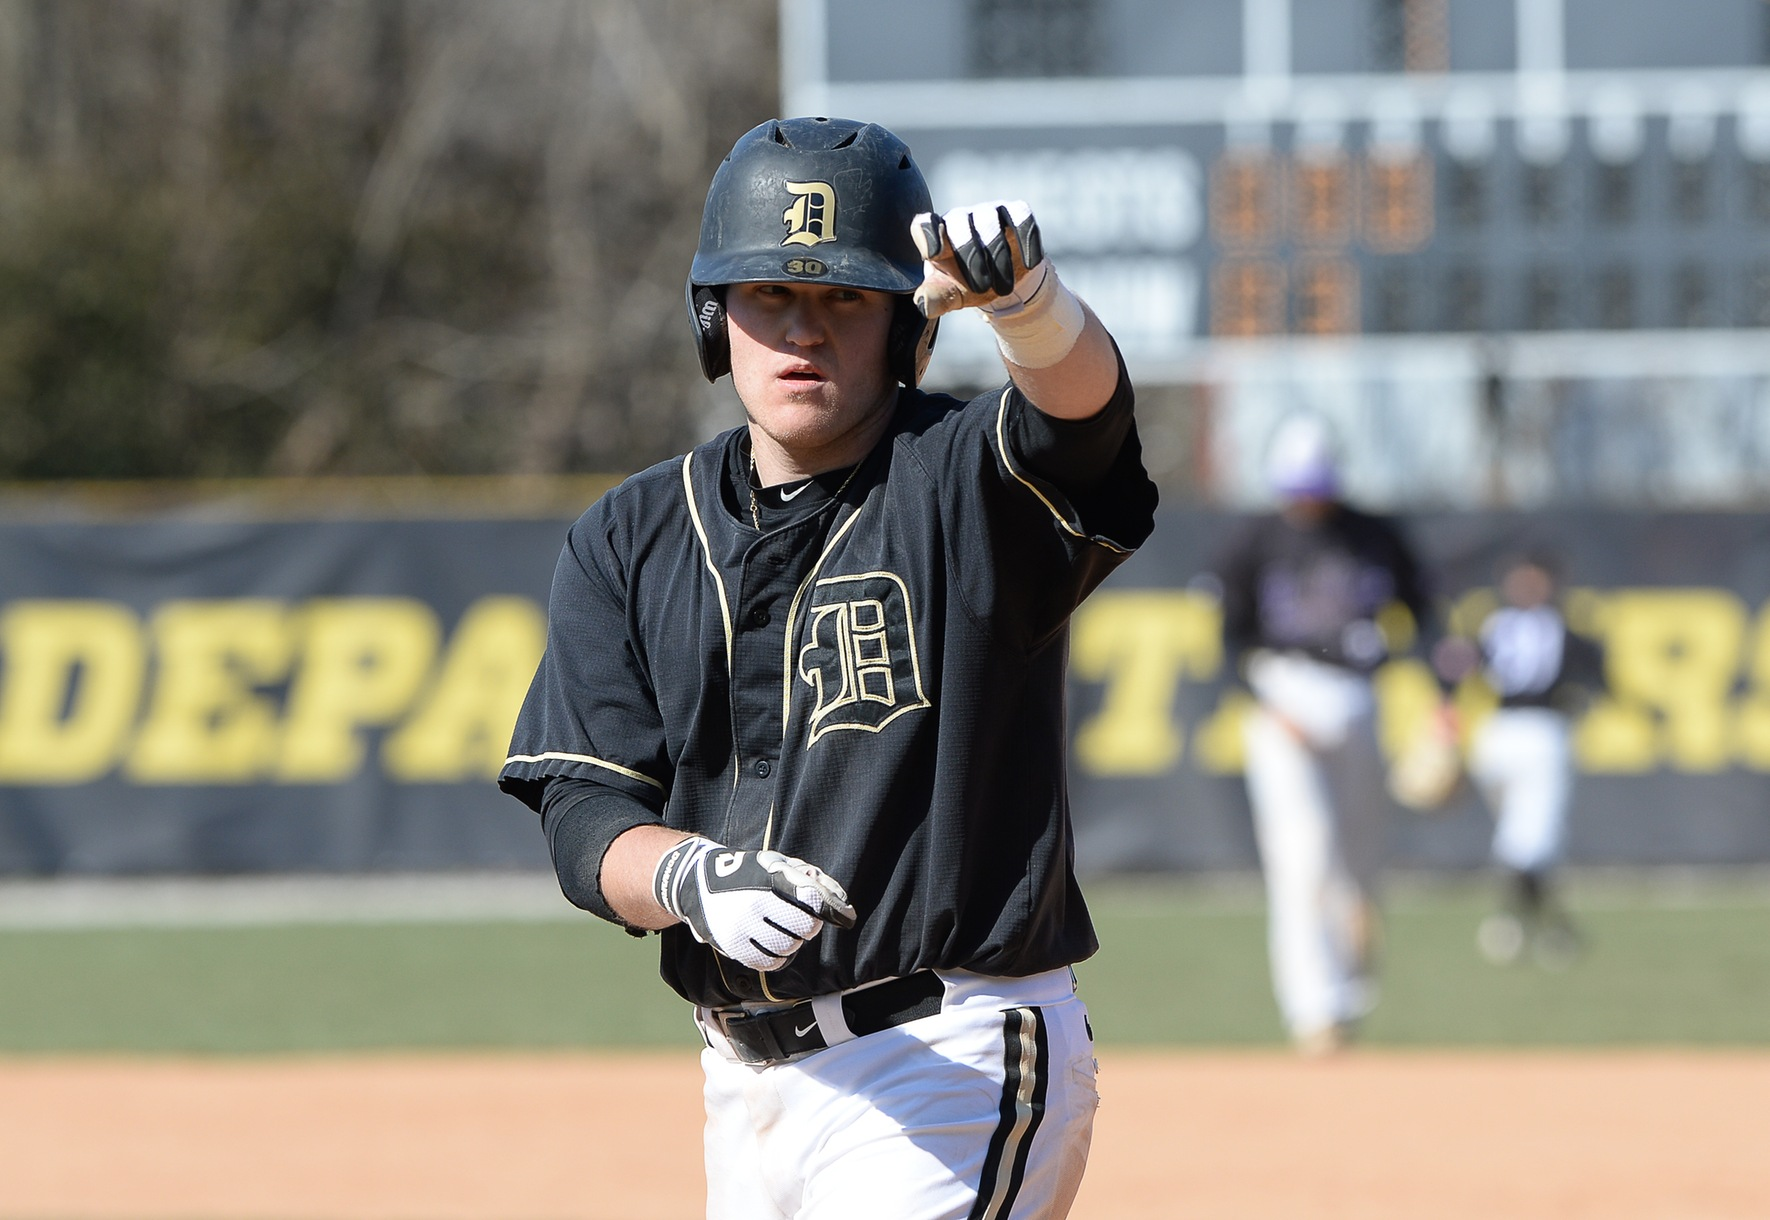 Hammel Hits Three Home Runs as DePauw Takes 3-of-4 Against Wittenberg